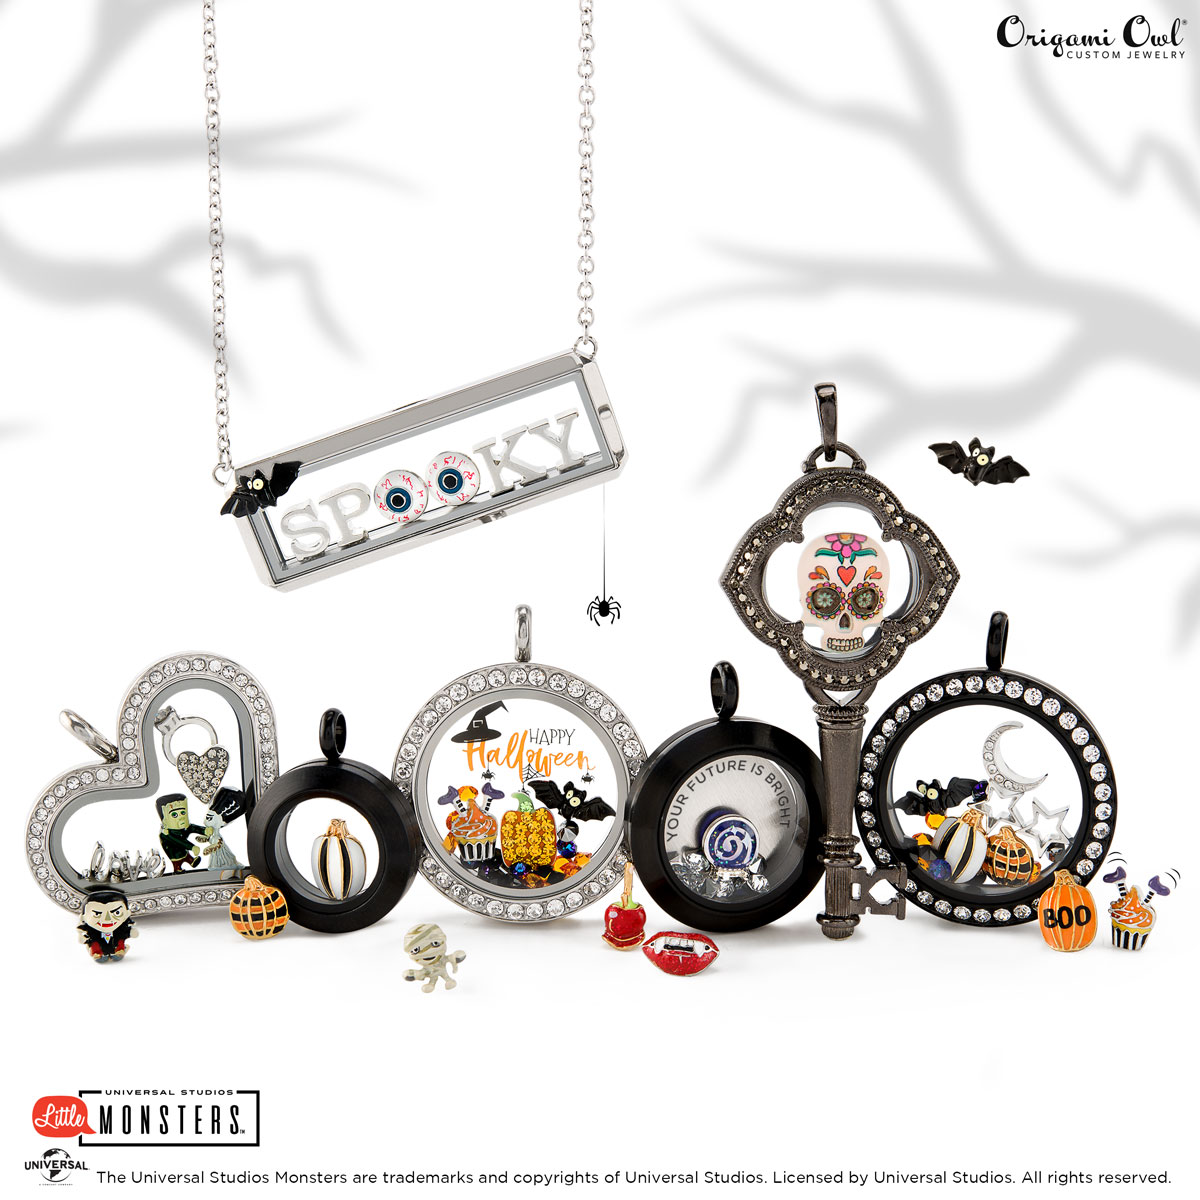 Halloween 2020 Origami Owl Spooky: Origami Owl's Halloween Collection 2018 · life's little charms